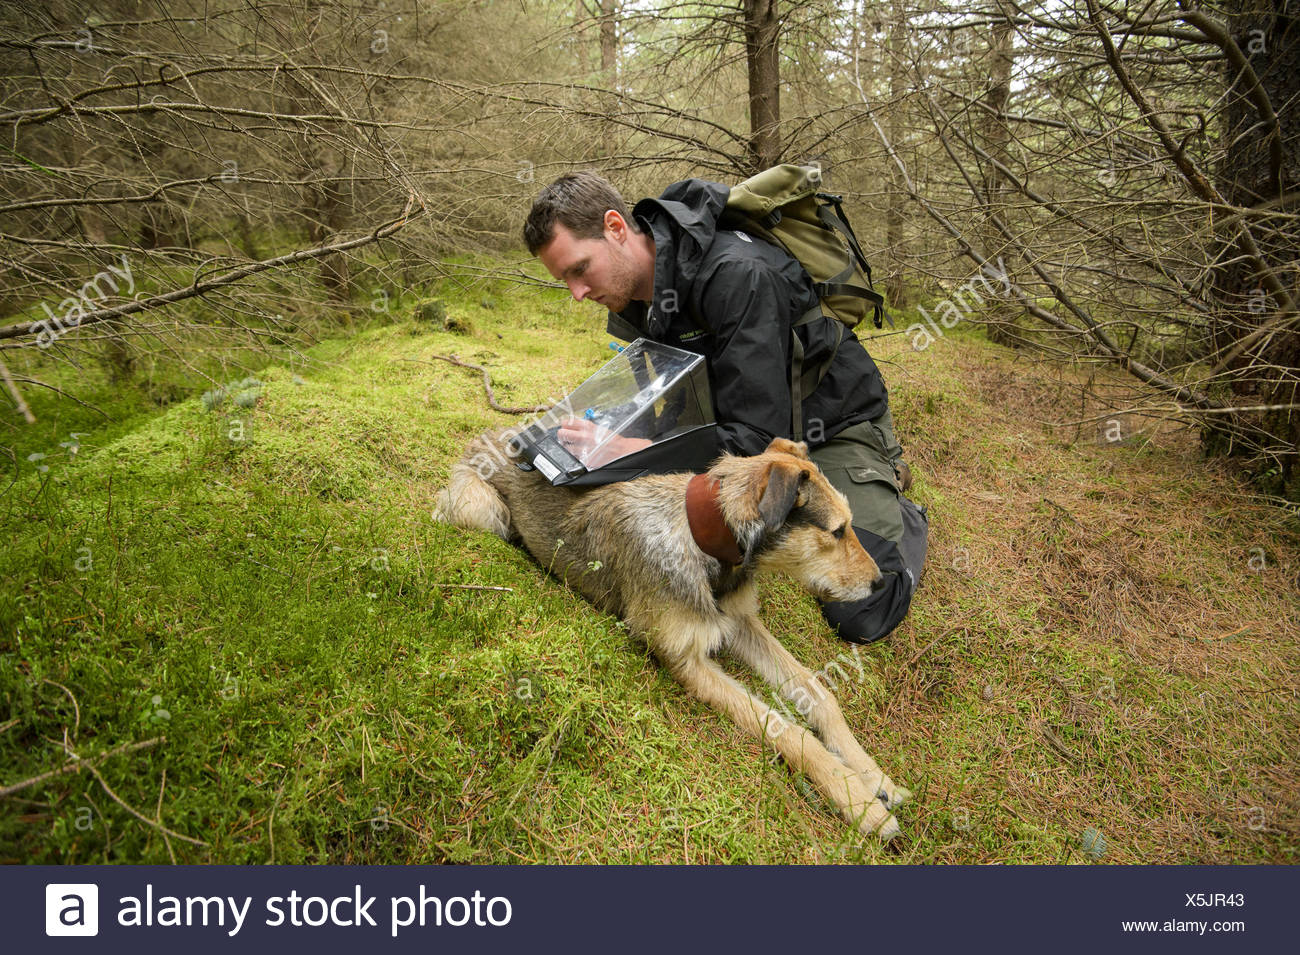 Project Officer Dave Bavin (and his dog Bryn) conducting woodland surveys at potential release sites, Pine Marten Recovery Project, Vincent Wildlife Trust, Ceredigion, Wales, UK 2015 - Stock Image